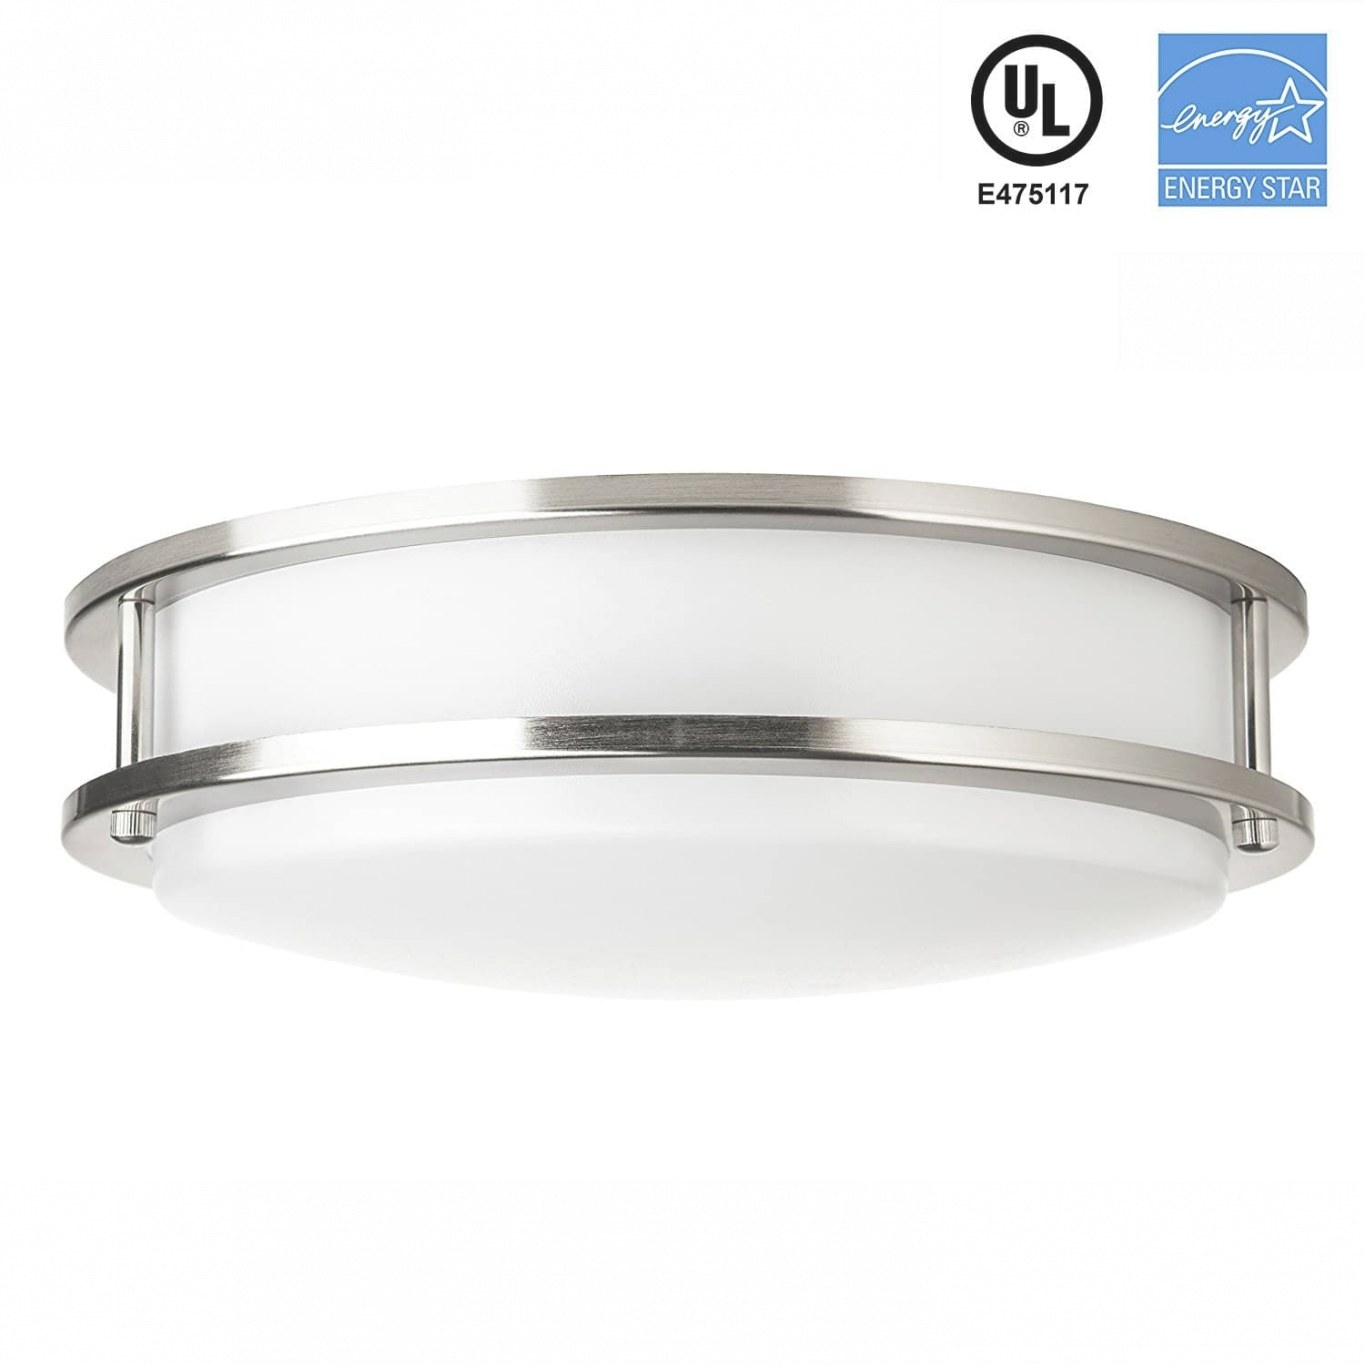 Top 10 Best Led Ceiling Lights In 2019 - Topreviewproducts inside Led Flush Mount Ceiling Light